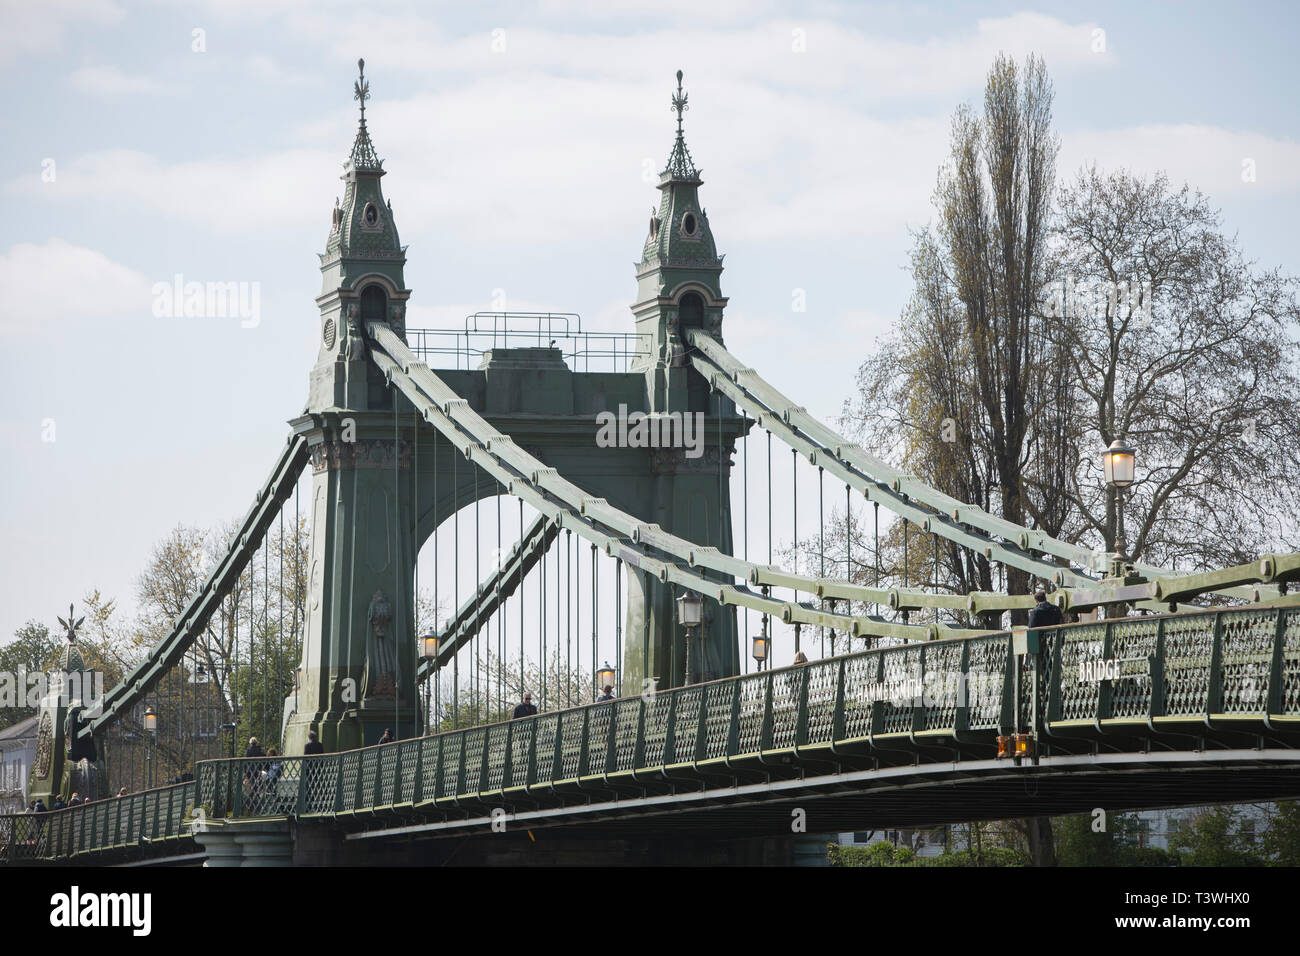 After being closed indefinitely to all traffic due to structural faults, pedestrians walk across Hammersmith Bridge, on 11th April 2019, in west London, England. Safety checks revealed 'critical faults' and Hammersmith and Fulham Council has said it's ben left with no choice but to shut the bridge until refurbishment costs could be met. The government has said that between 2015 and 2021 its is providing £11bn of support to the 132-year-old bridge. - Stock Image